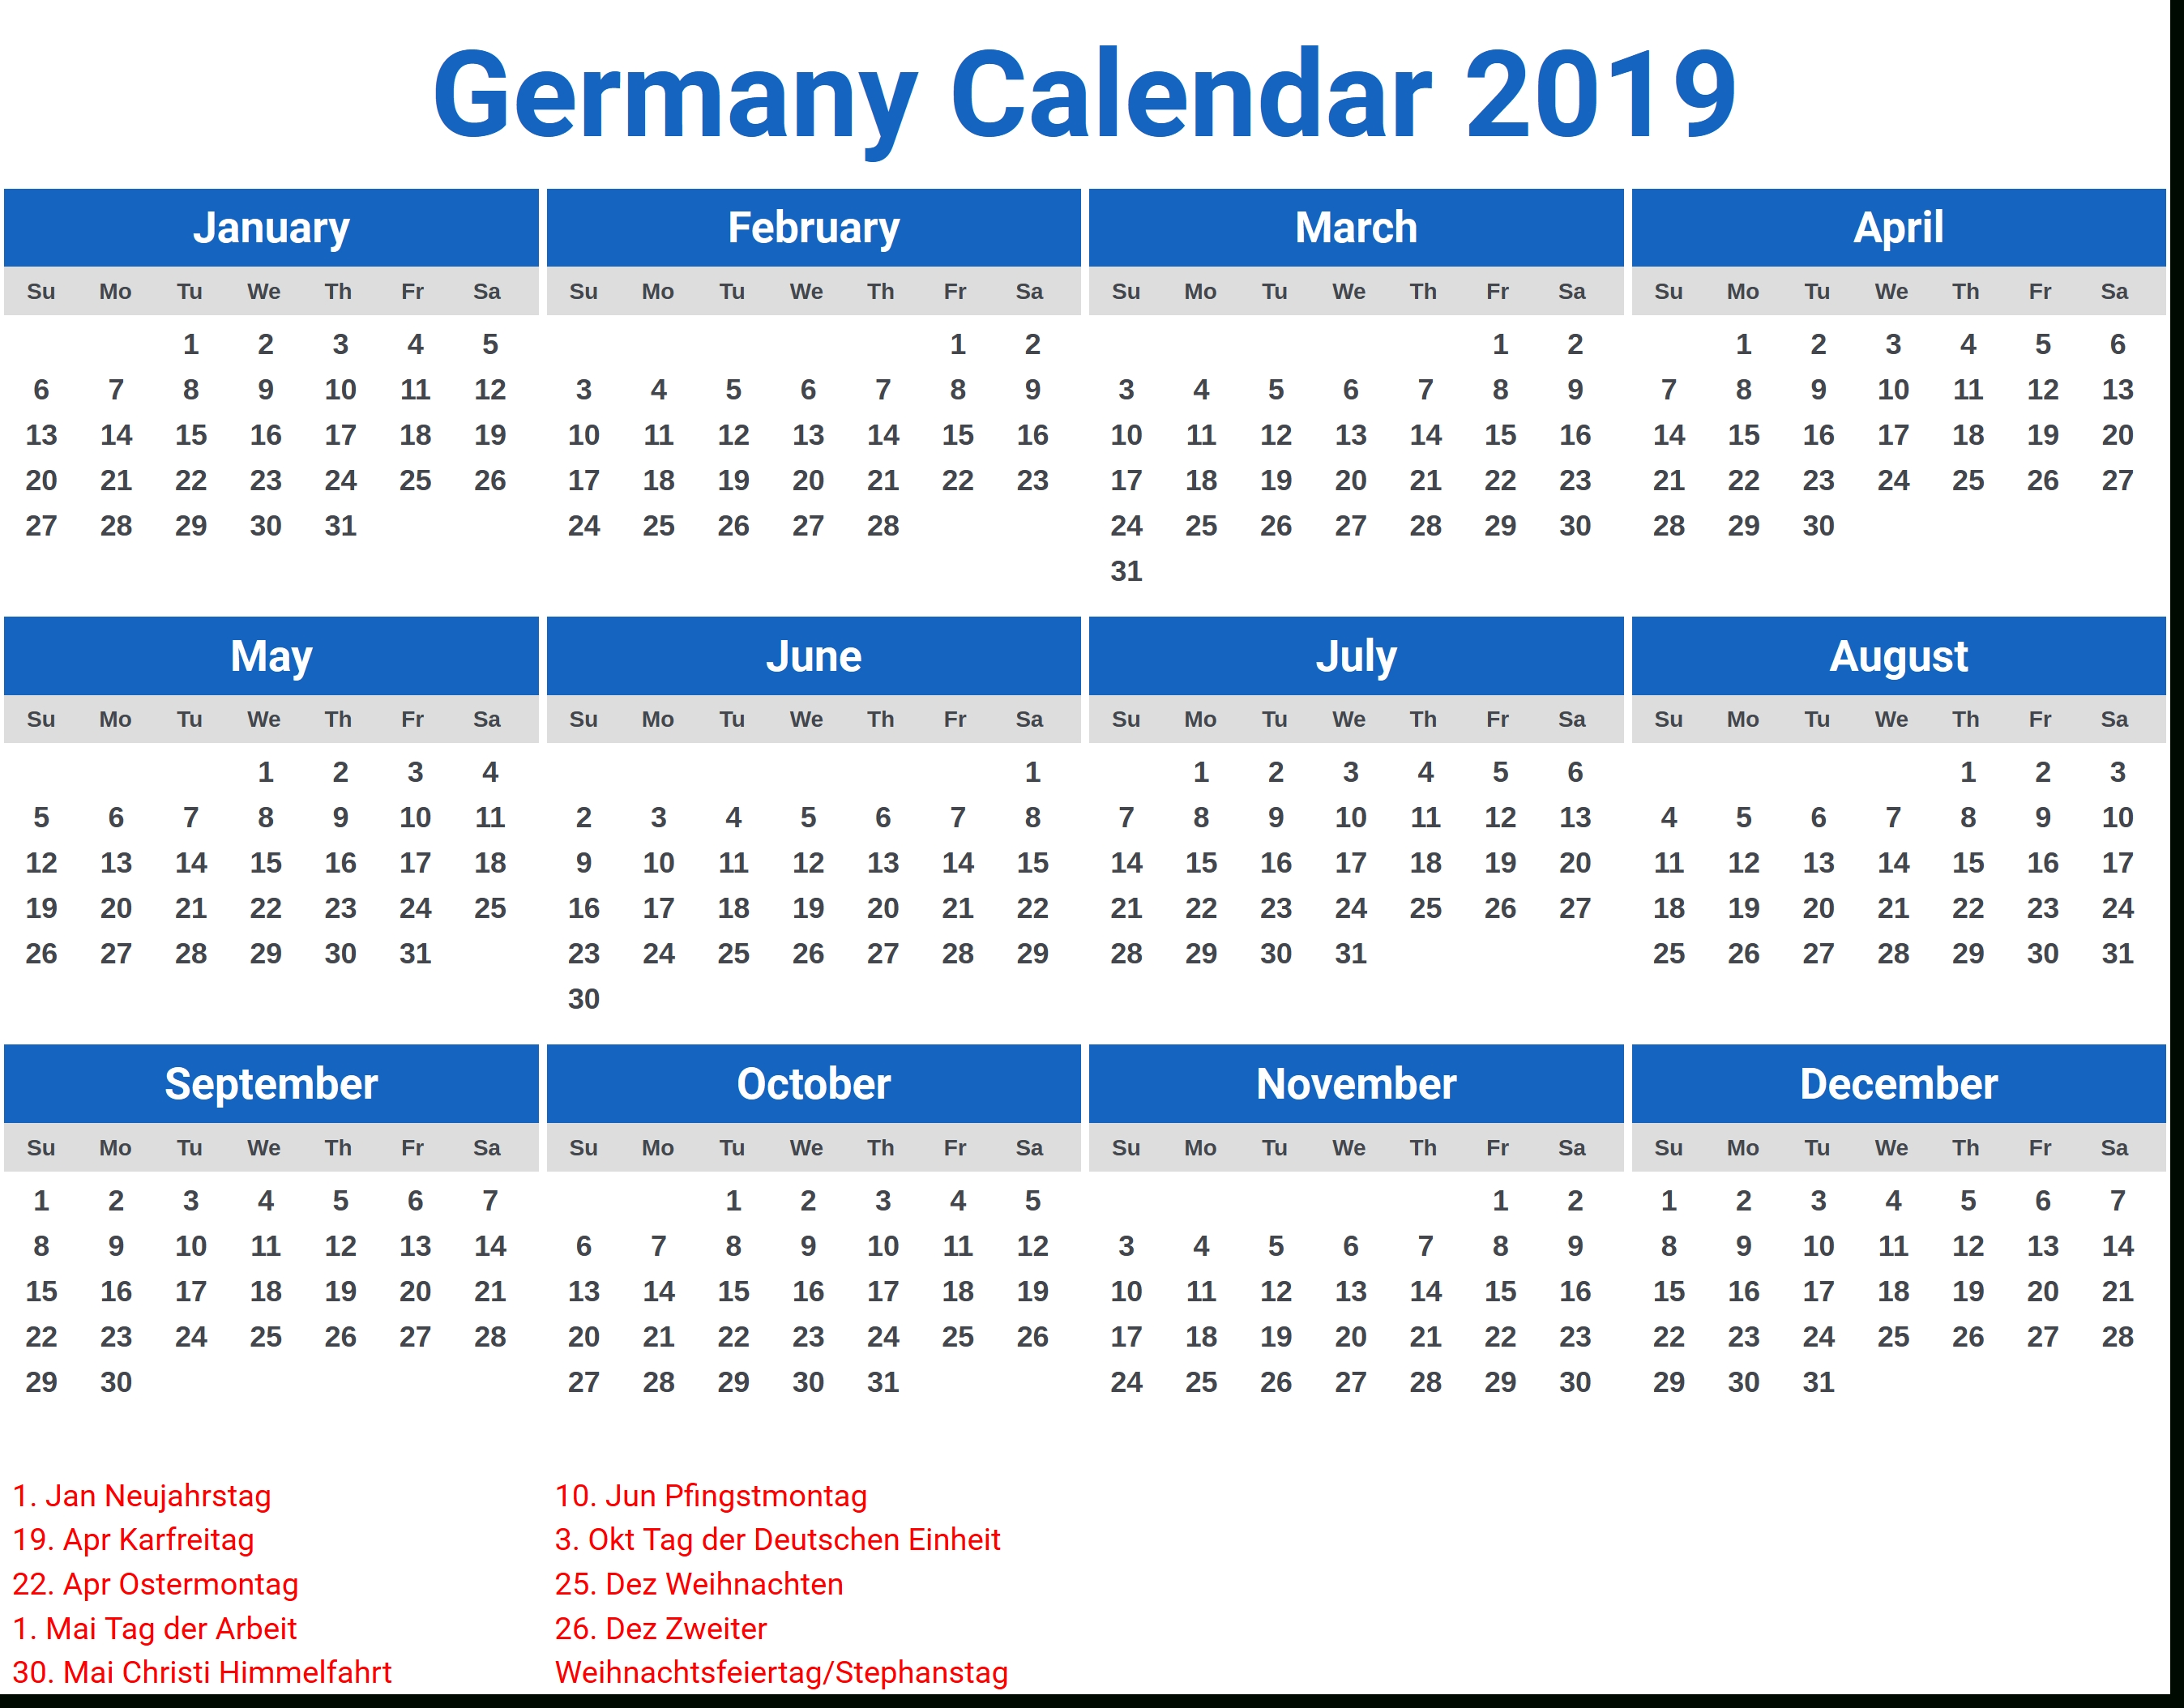 Germany 2019 Calendar With Holidays | 2019 Calendars | Pinterest Calendar 2019 Excel Germany